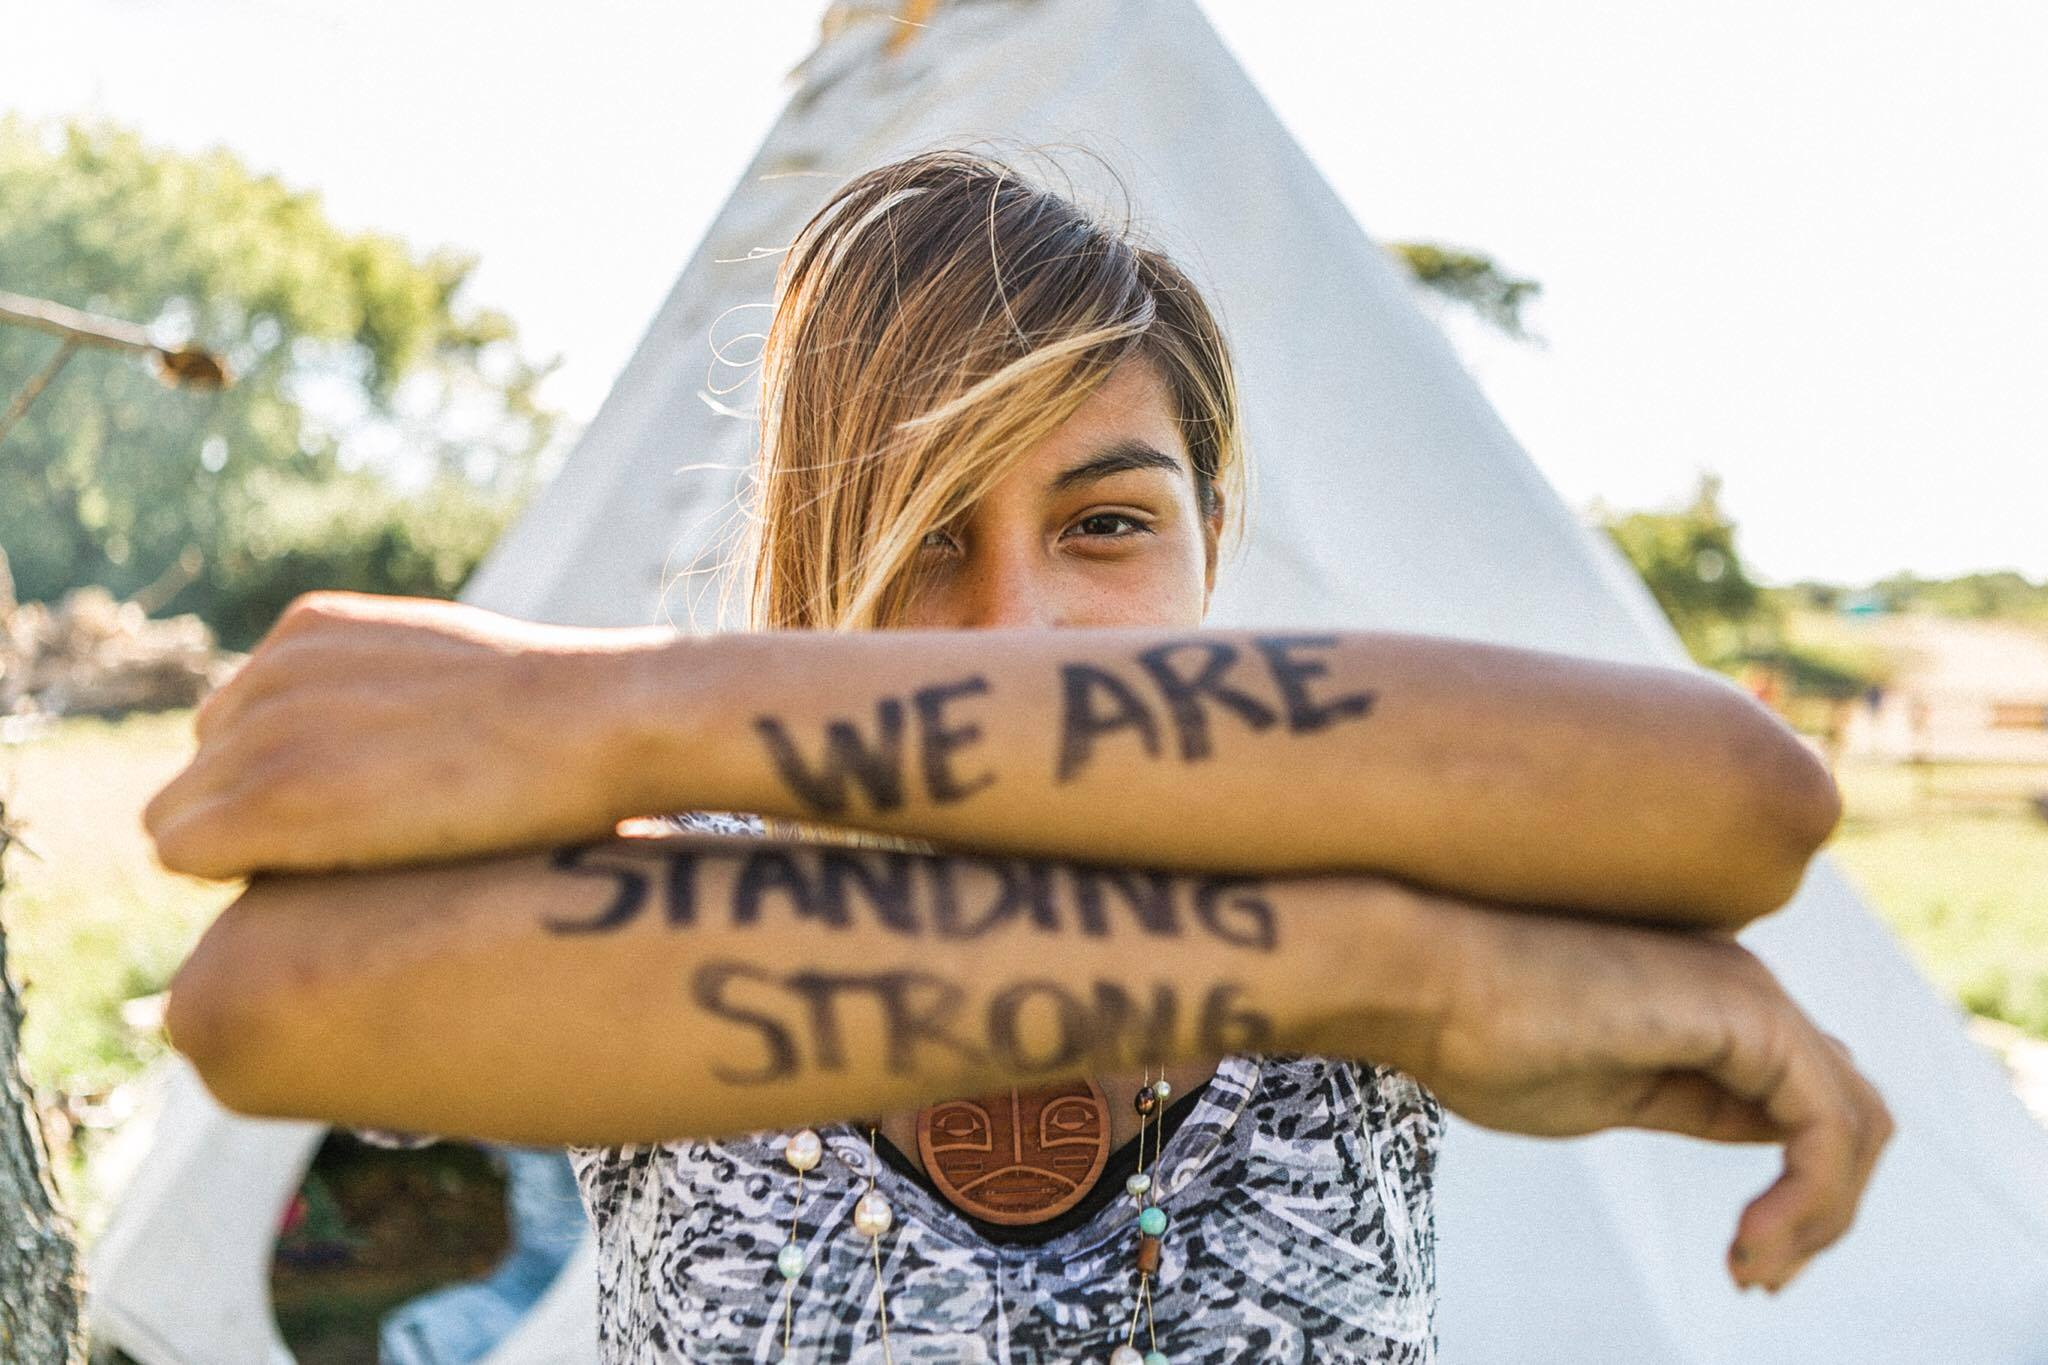 A member of the tribe is Standing Strong at  Sacred Stone Camp  photo by  Josué Rivas Fotographer   #StandWithStandingRock   #NoDAPL